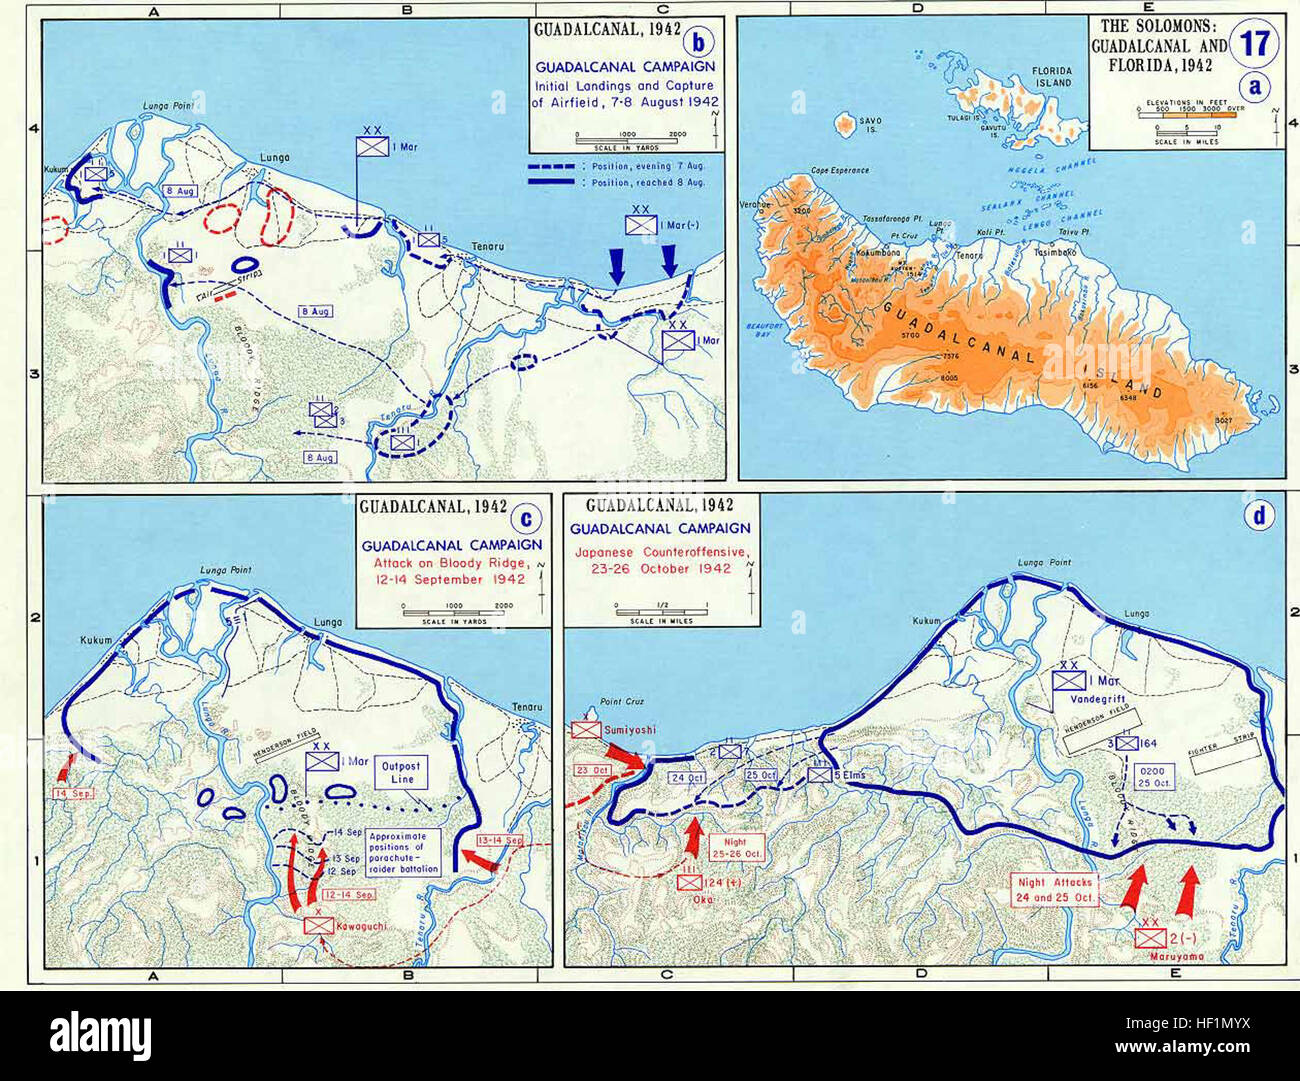 Pacific War - Guadalcanal Campaign 1942 - Map Stock Photo: 129730830